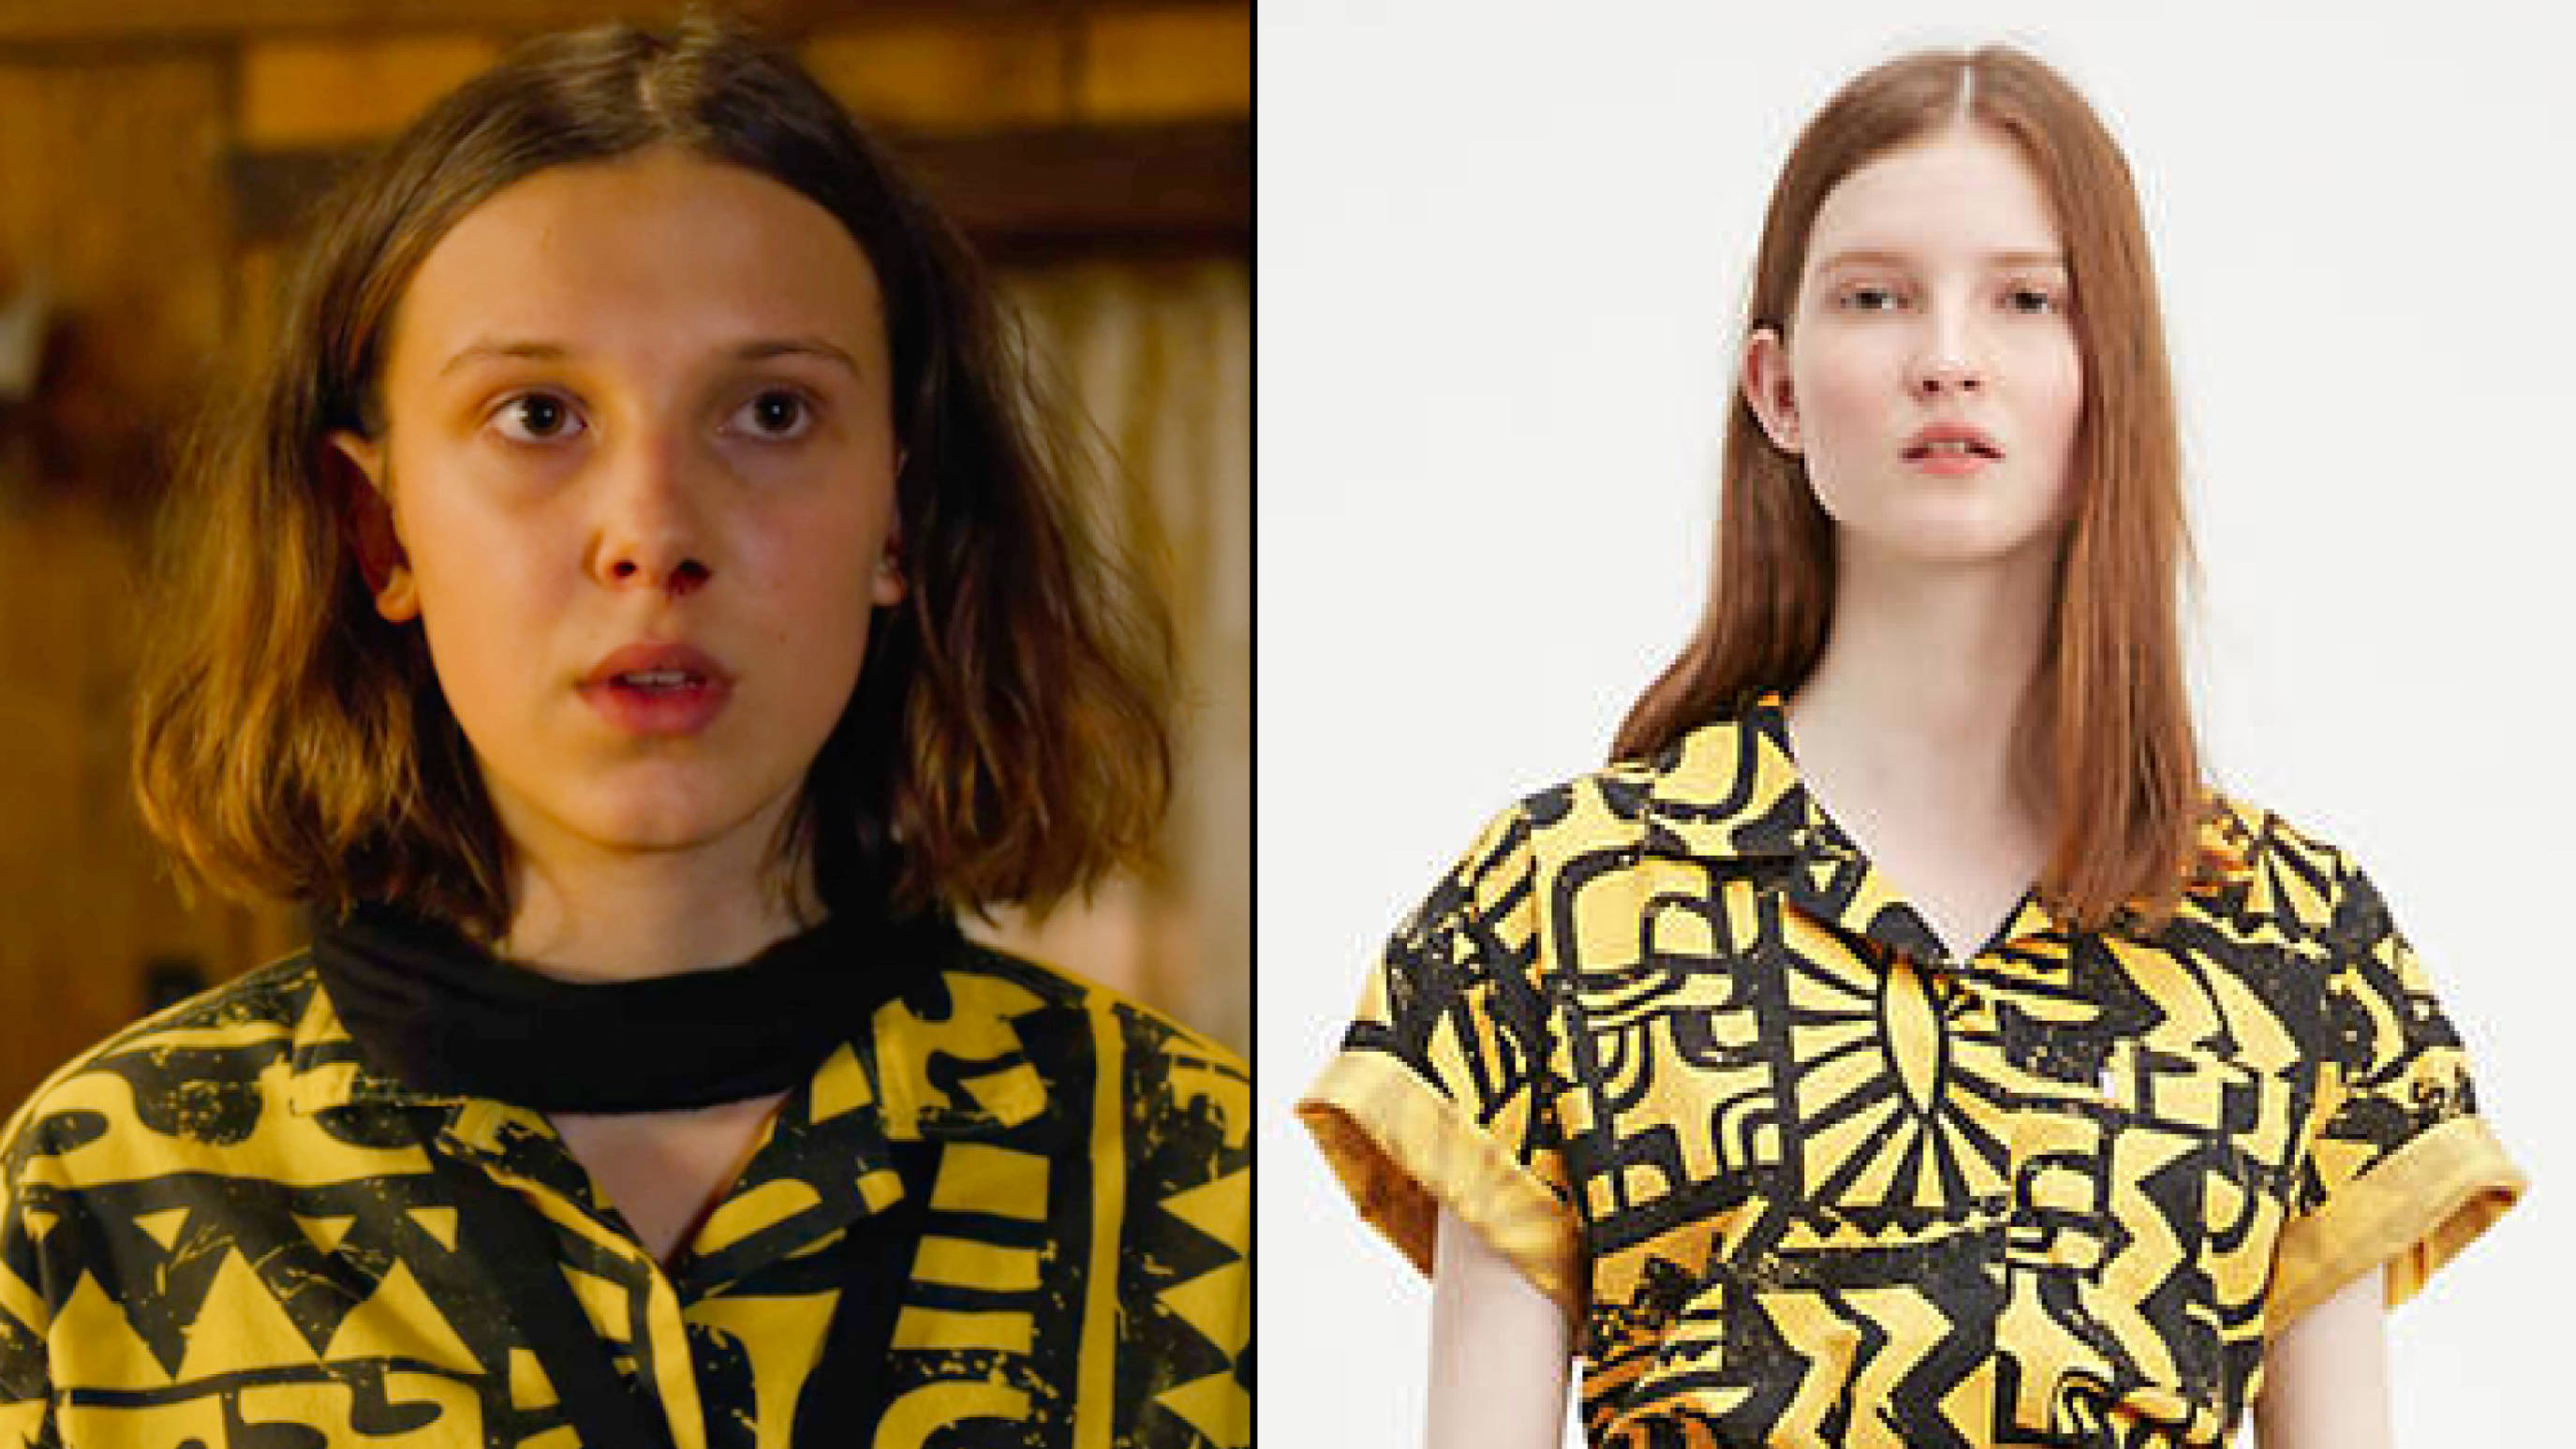 eleven s mall outfit roblox Here S Where To Buy Eleven S Yellow Shirt From Stranger Things 3 Popbuzz